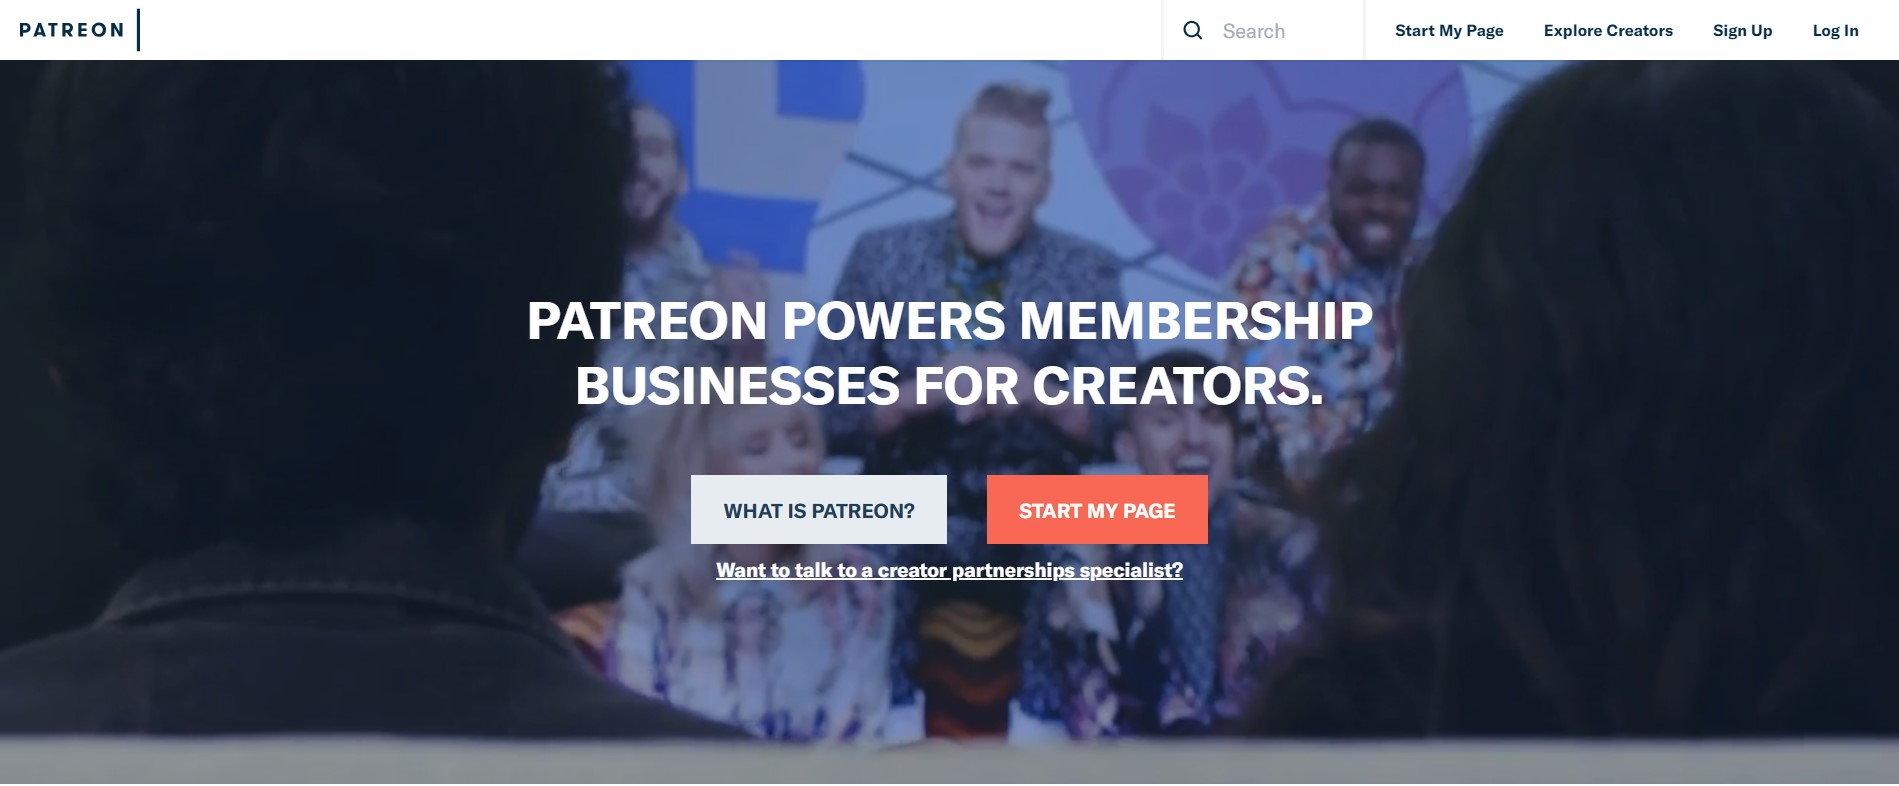 crowdfunding for business - homepage of patreon website